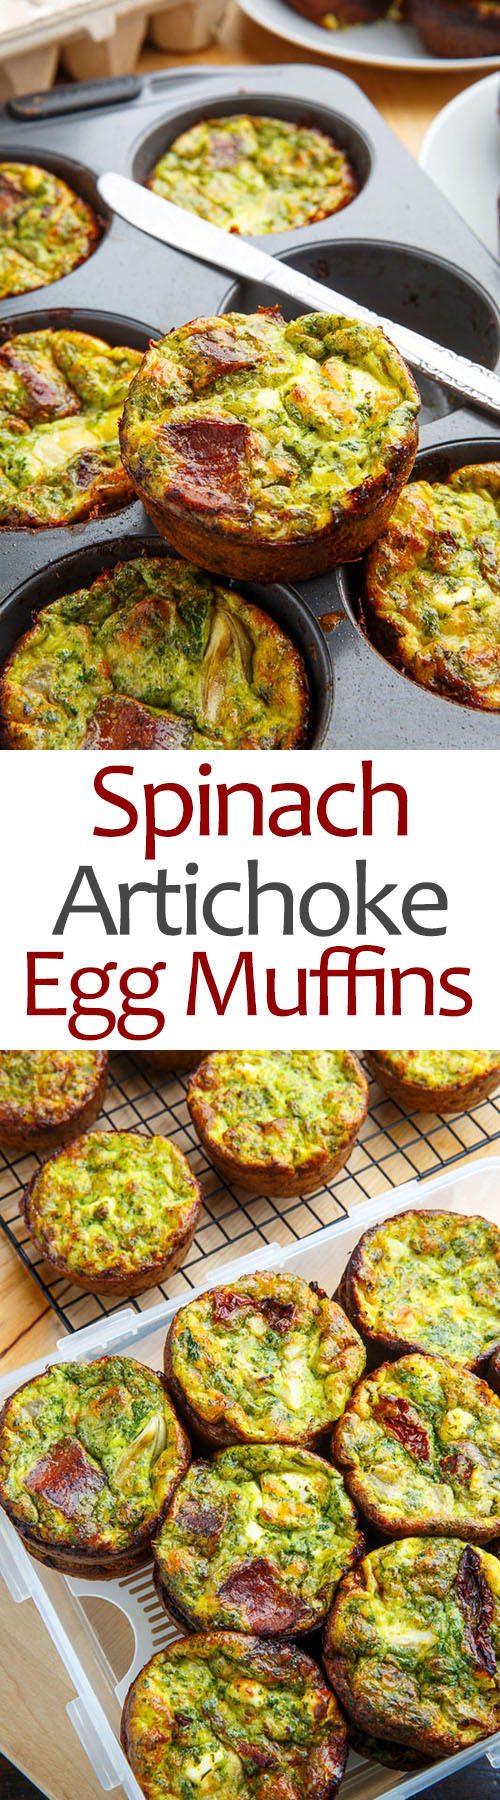 Spinach and Artichoke Egg Muffins with Bacon